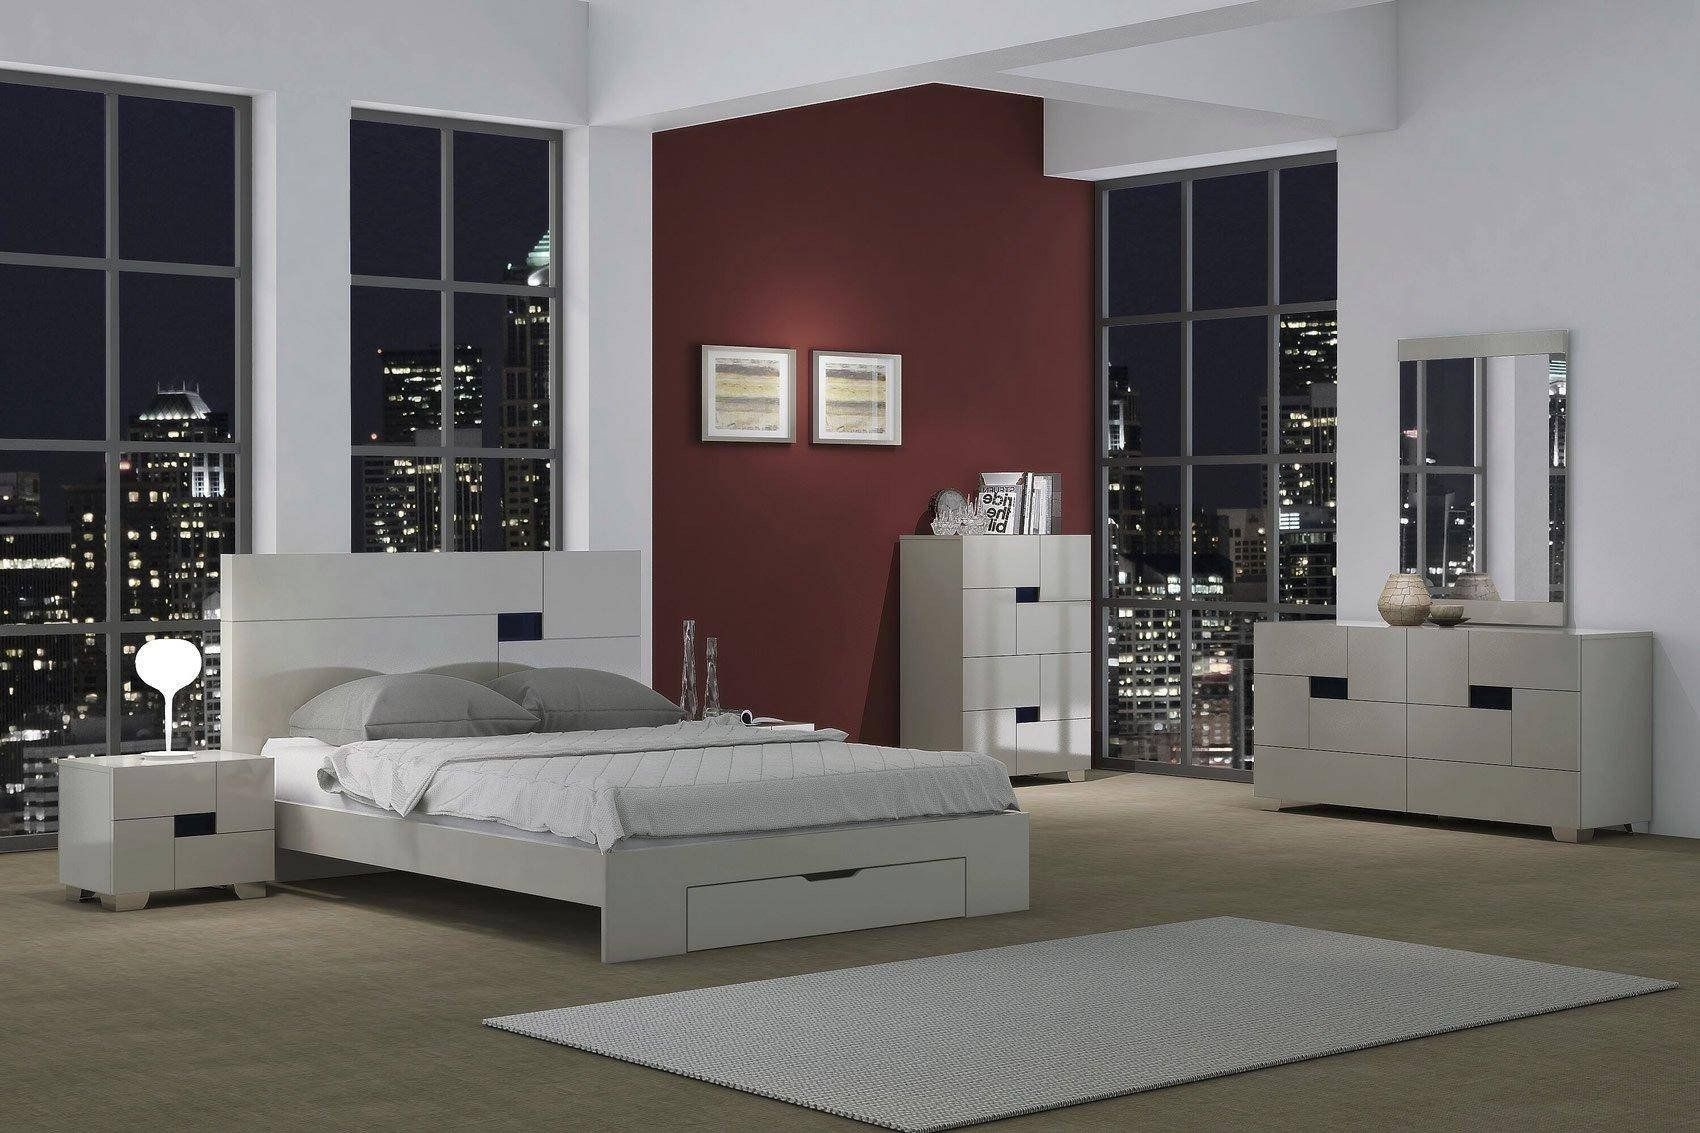 Best Place to Buy Bedroom Furniture Luxury Contemporary Light Gray Lacquer Storage Queen Bedroom Set